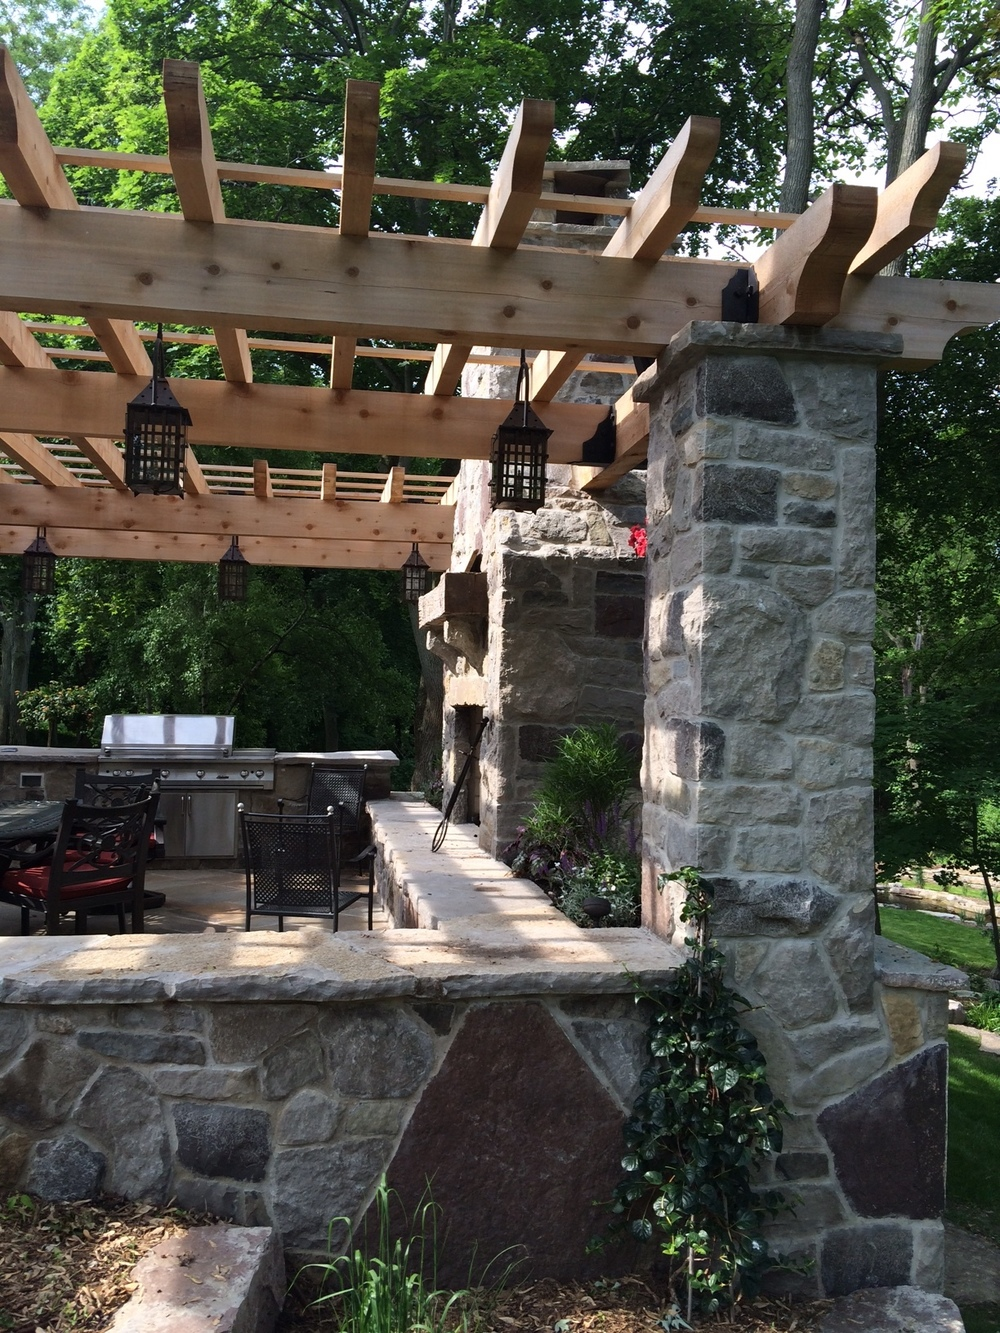 Wooden pergola and natural stone outdoor seating space